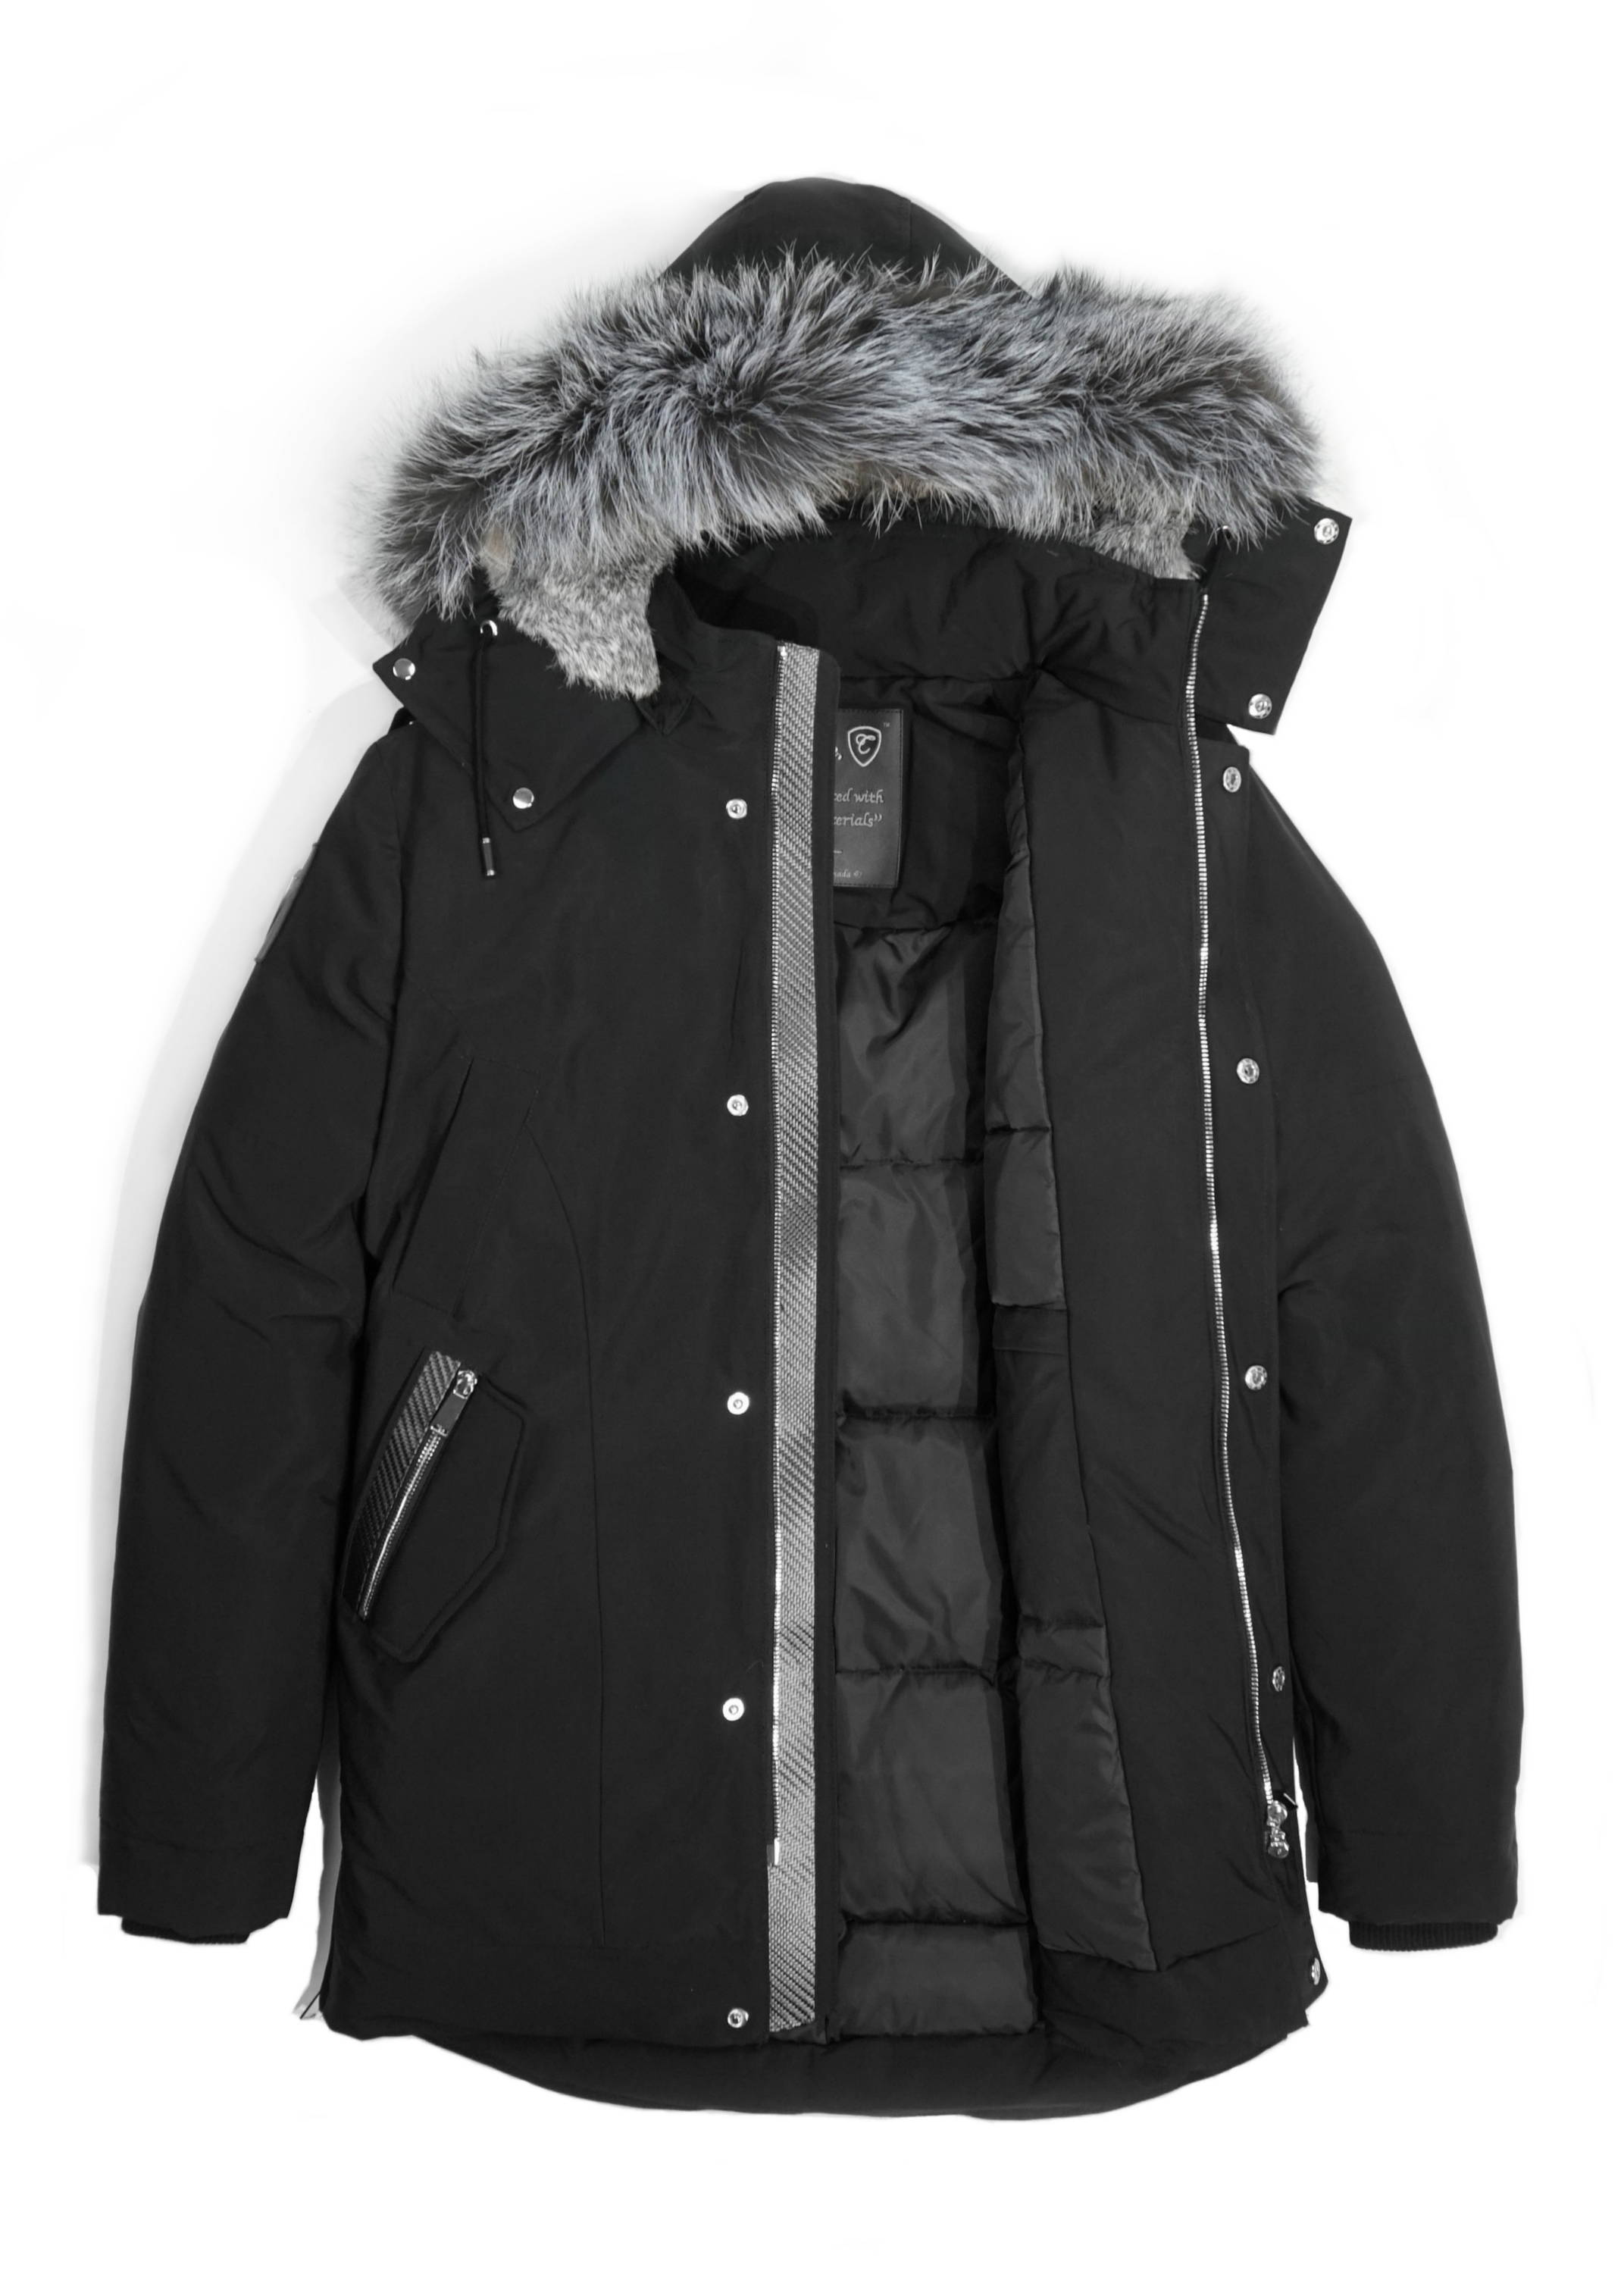 Carbonesque mens Orion parka